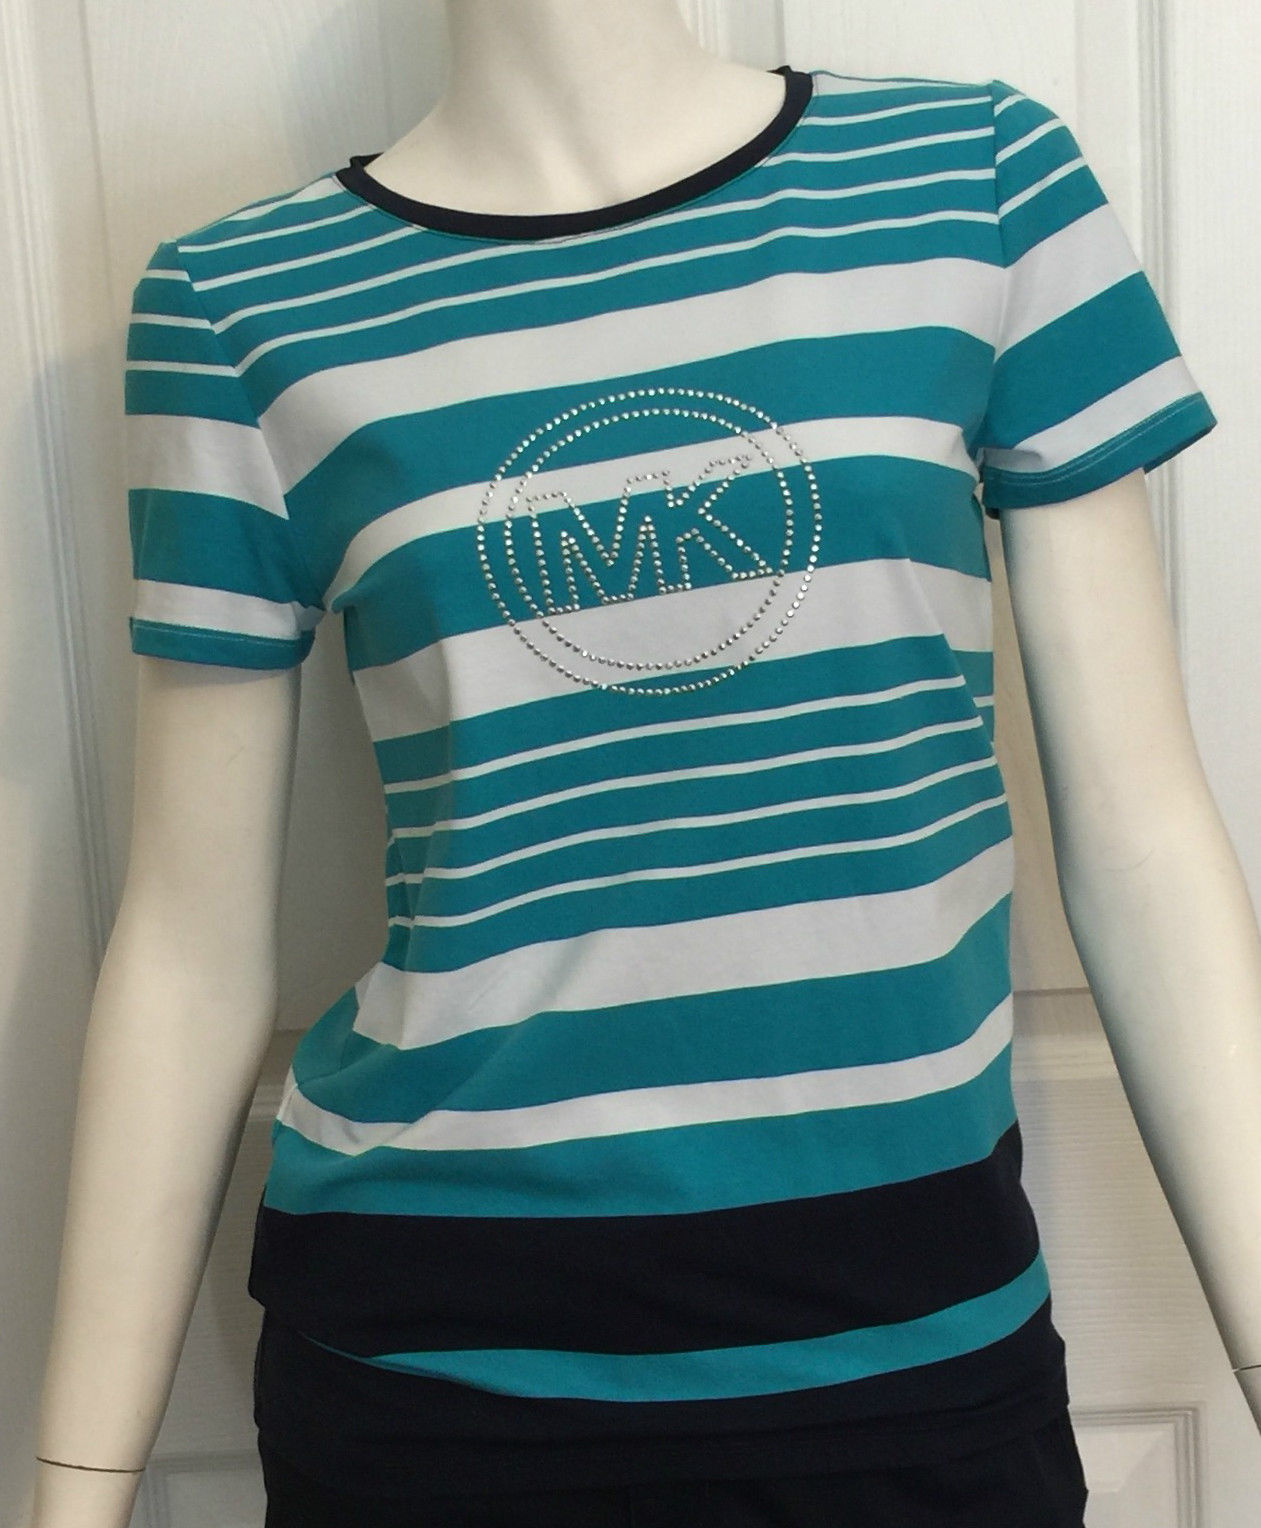 NWT Authentic Michael Kors Striped Top Size Small Navy Teal White